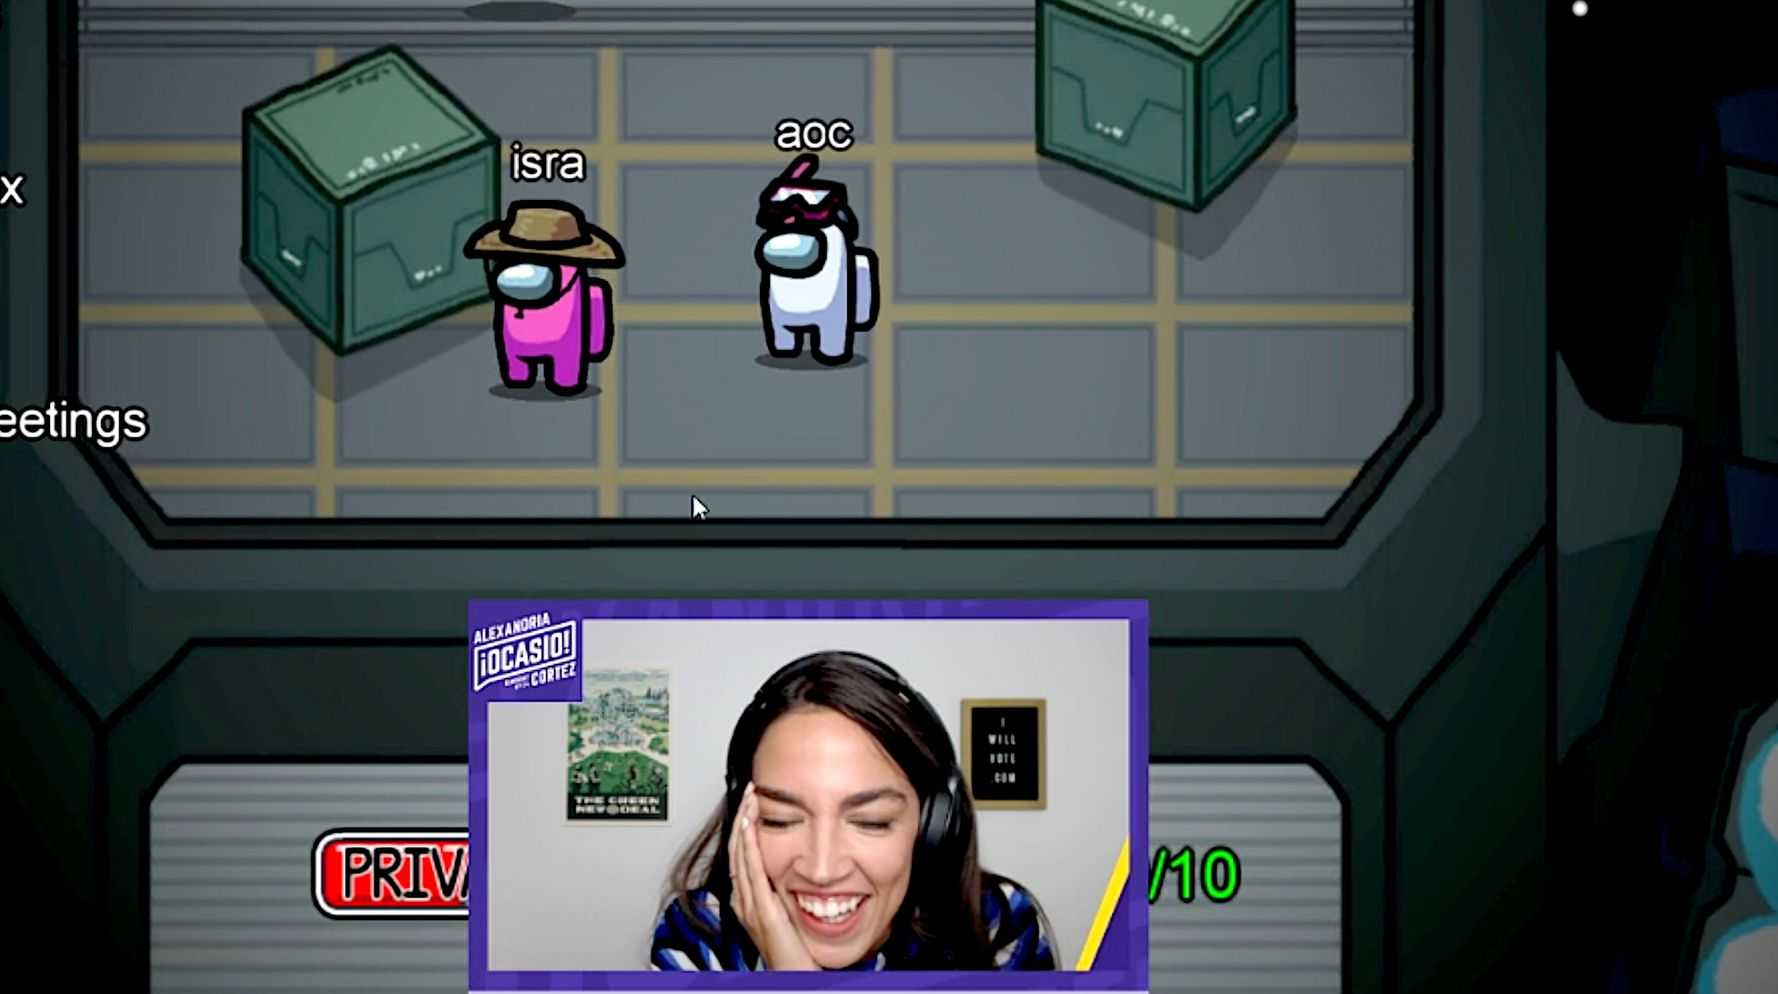 Alexandria Ocasio-Cortez Plays 'Among Us' On Twitch, Breaks The Internet